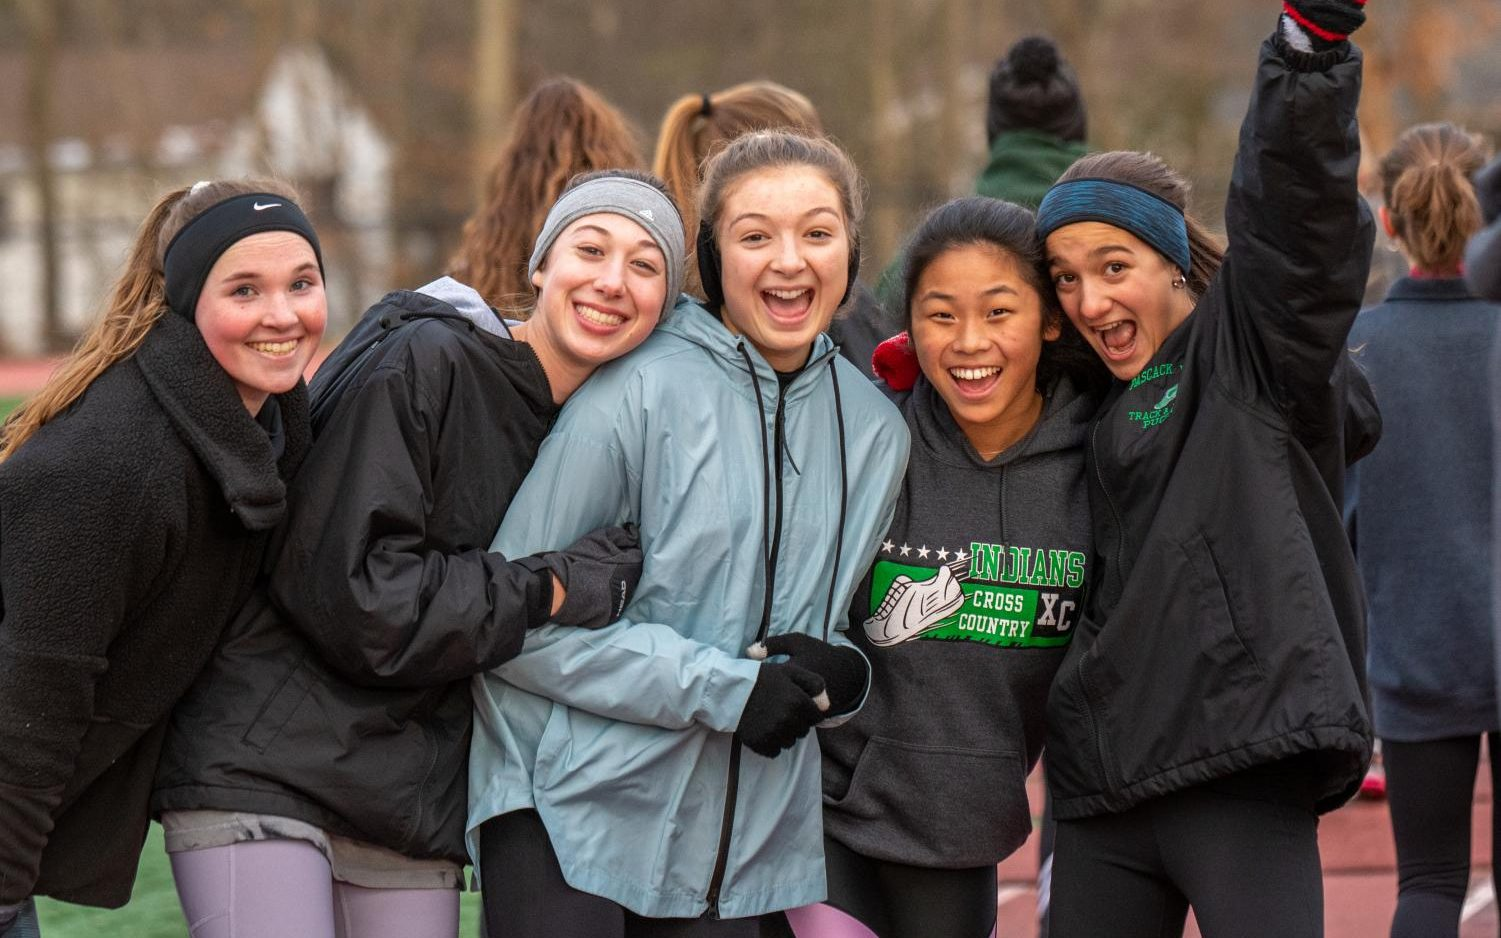 Sophomores Shannon Connelly, Julianna Mullaney, Emma Epiphaniou, Ai Lin Doody and Mia Puccio pose for a picture at a track practice during the teams first week of training.